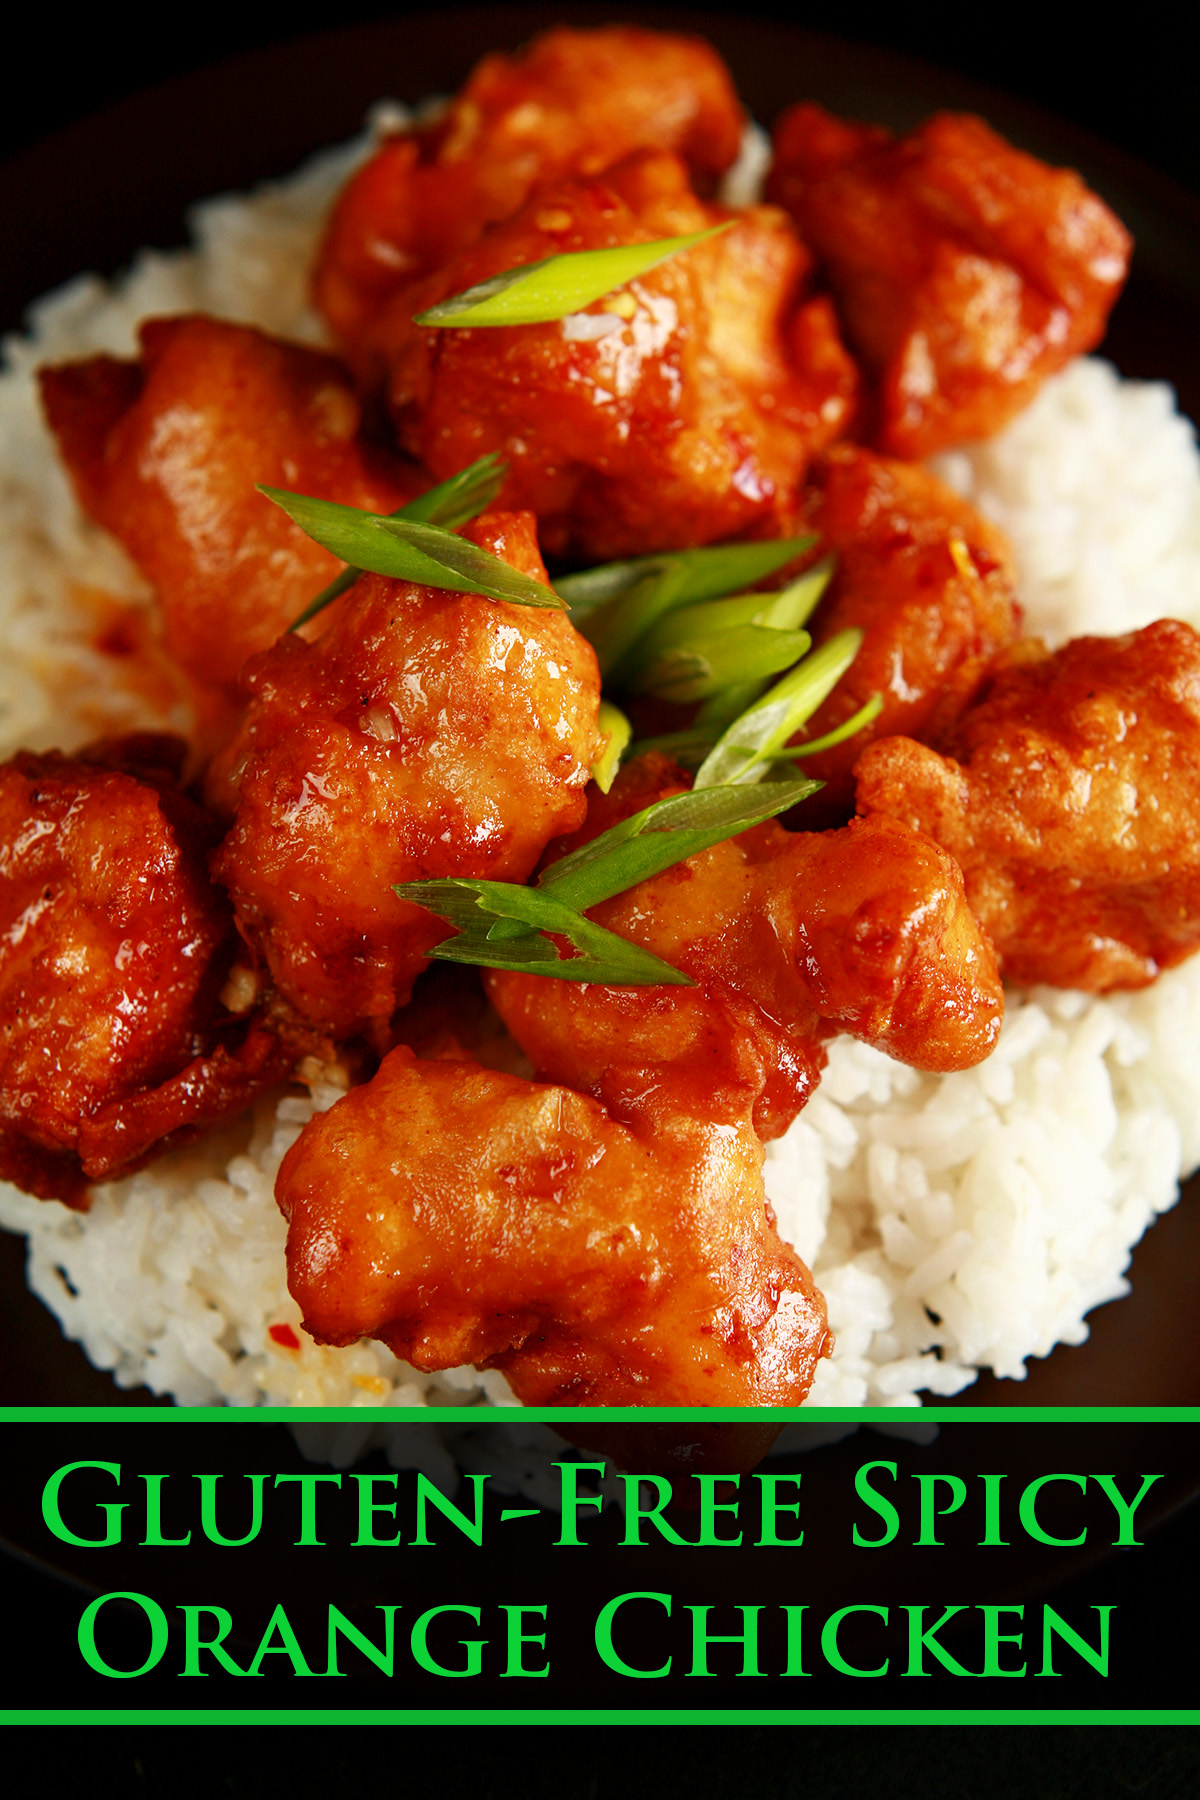 A plate of rice, covered with gluten-free orange chicken: Chunks of battered and deep fried chicken coated in a glossy orange sauce, garnished with sliced green onions.